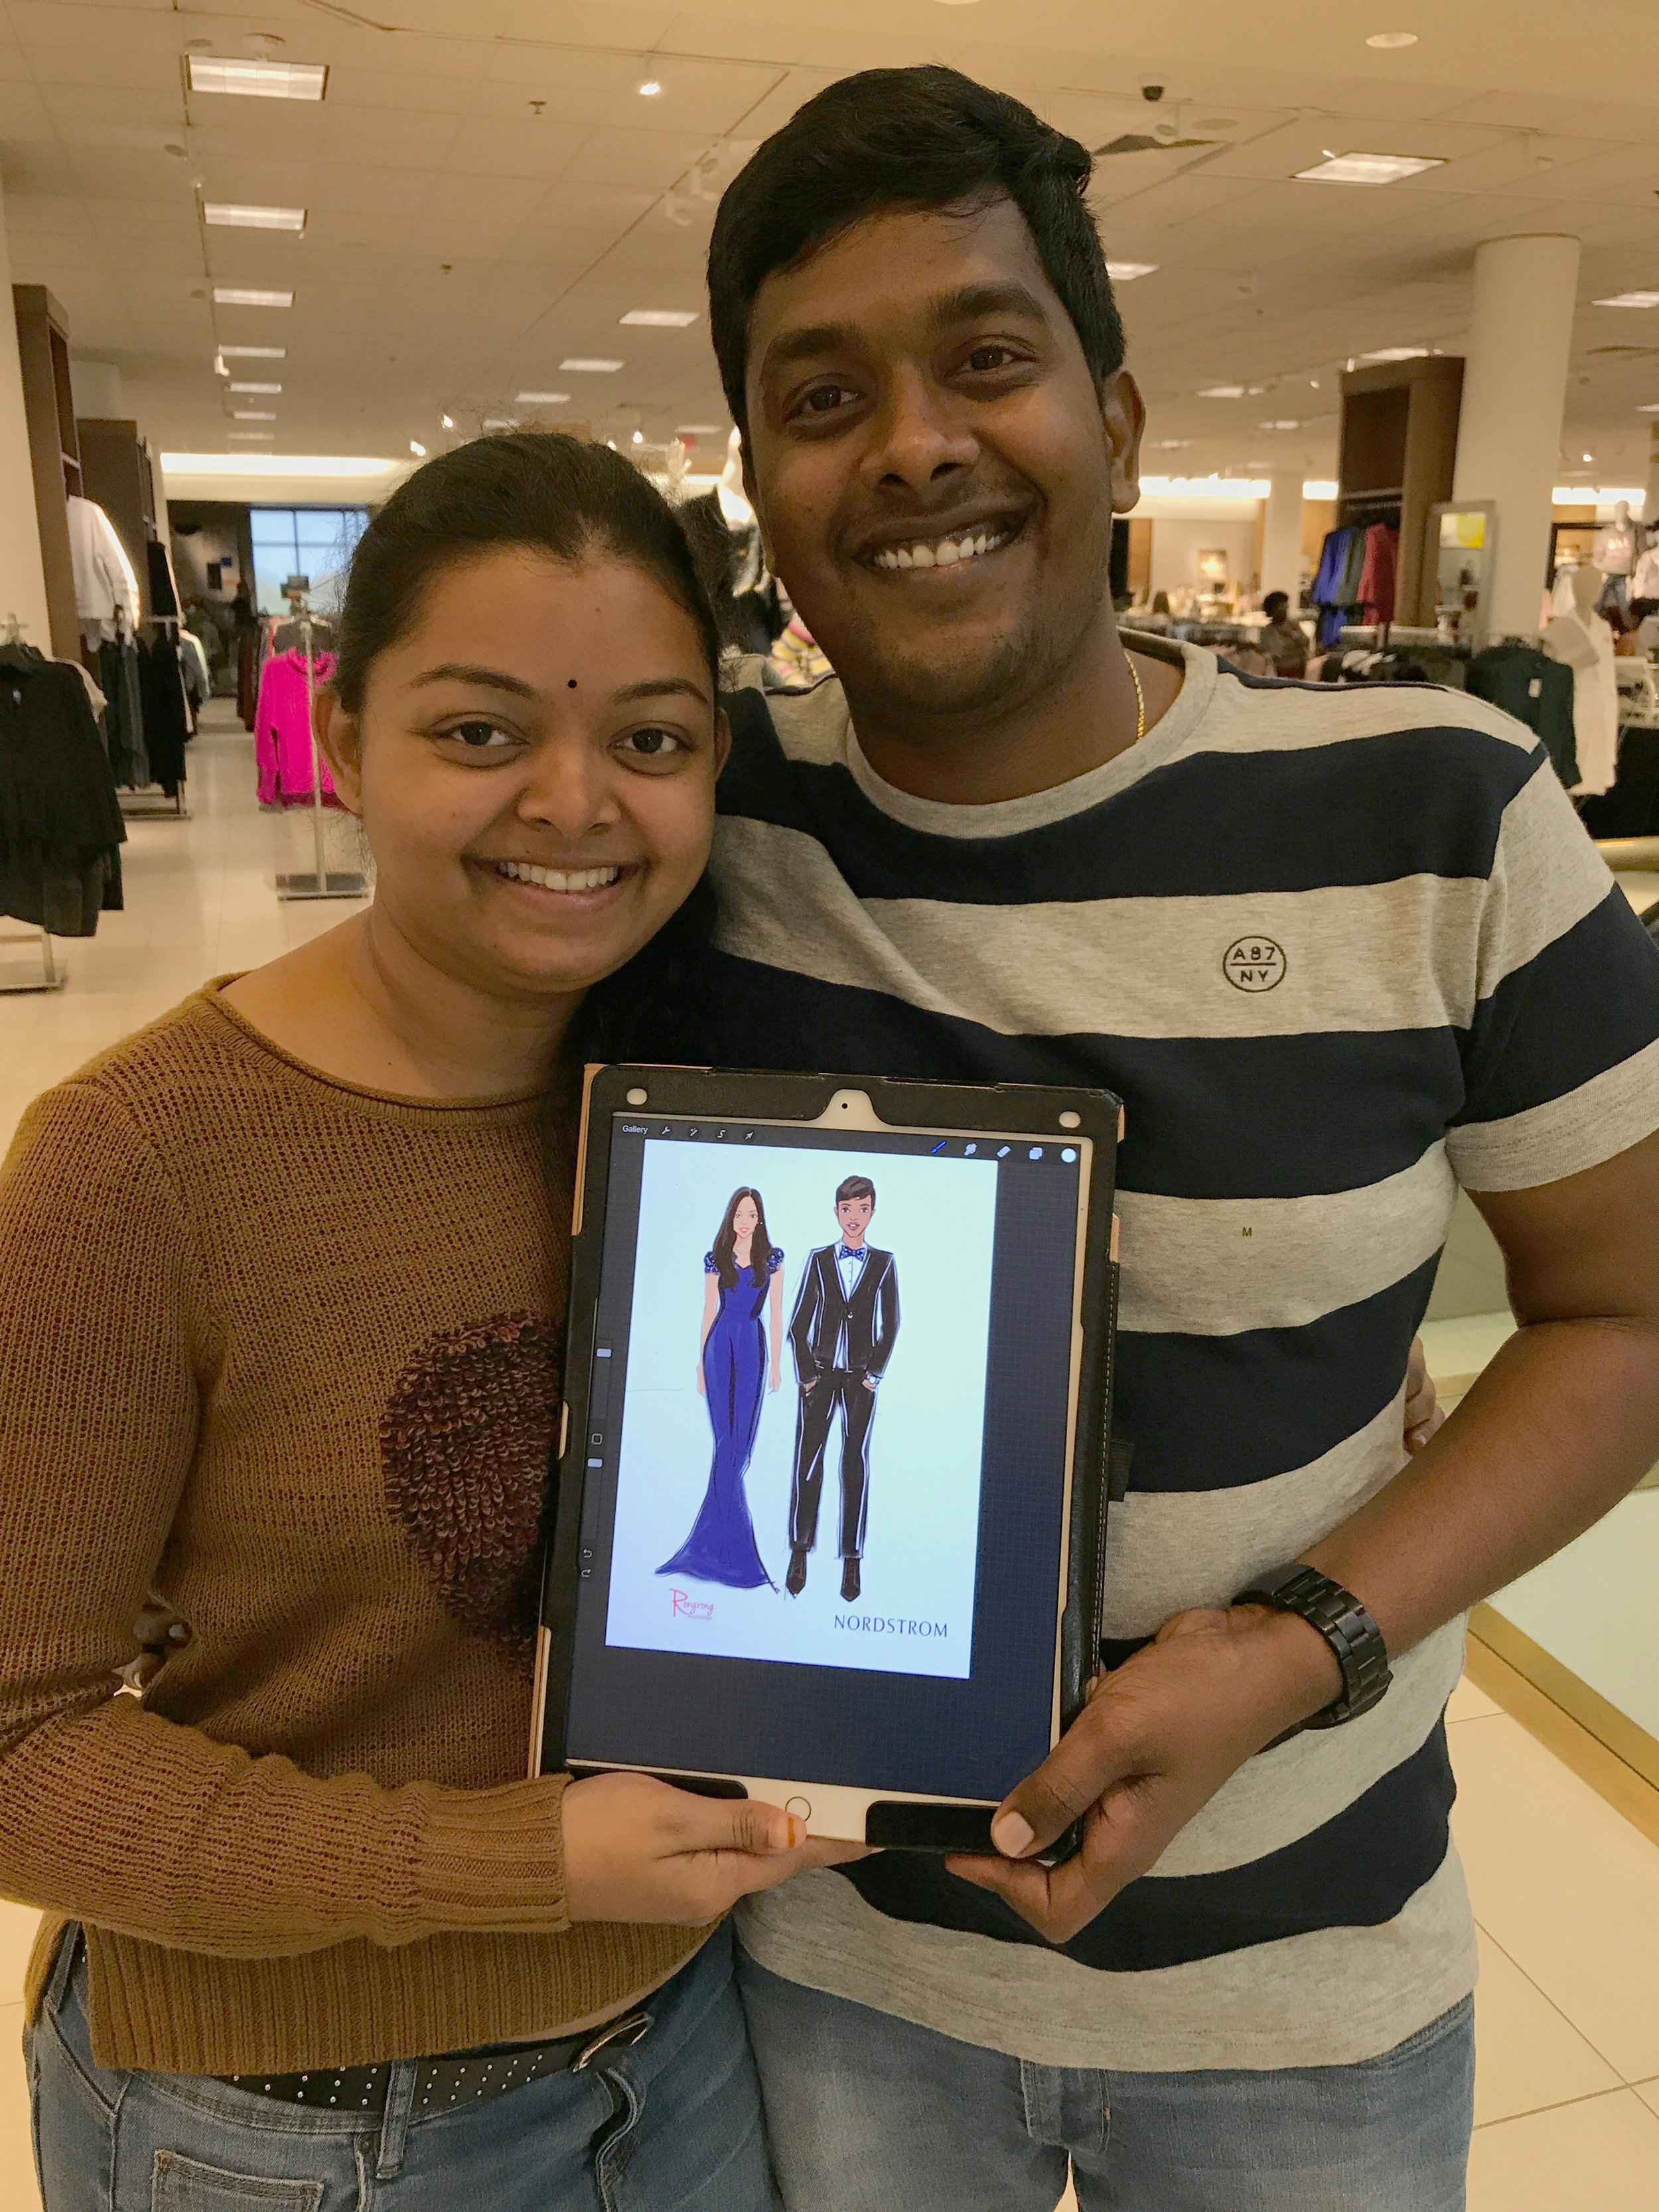 Rongrong DeVoe Live fashion sketching at Nordstrom